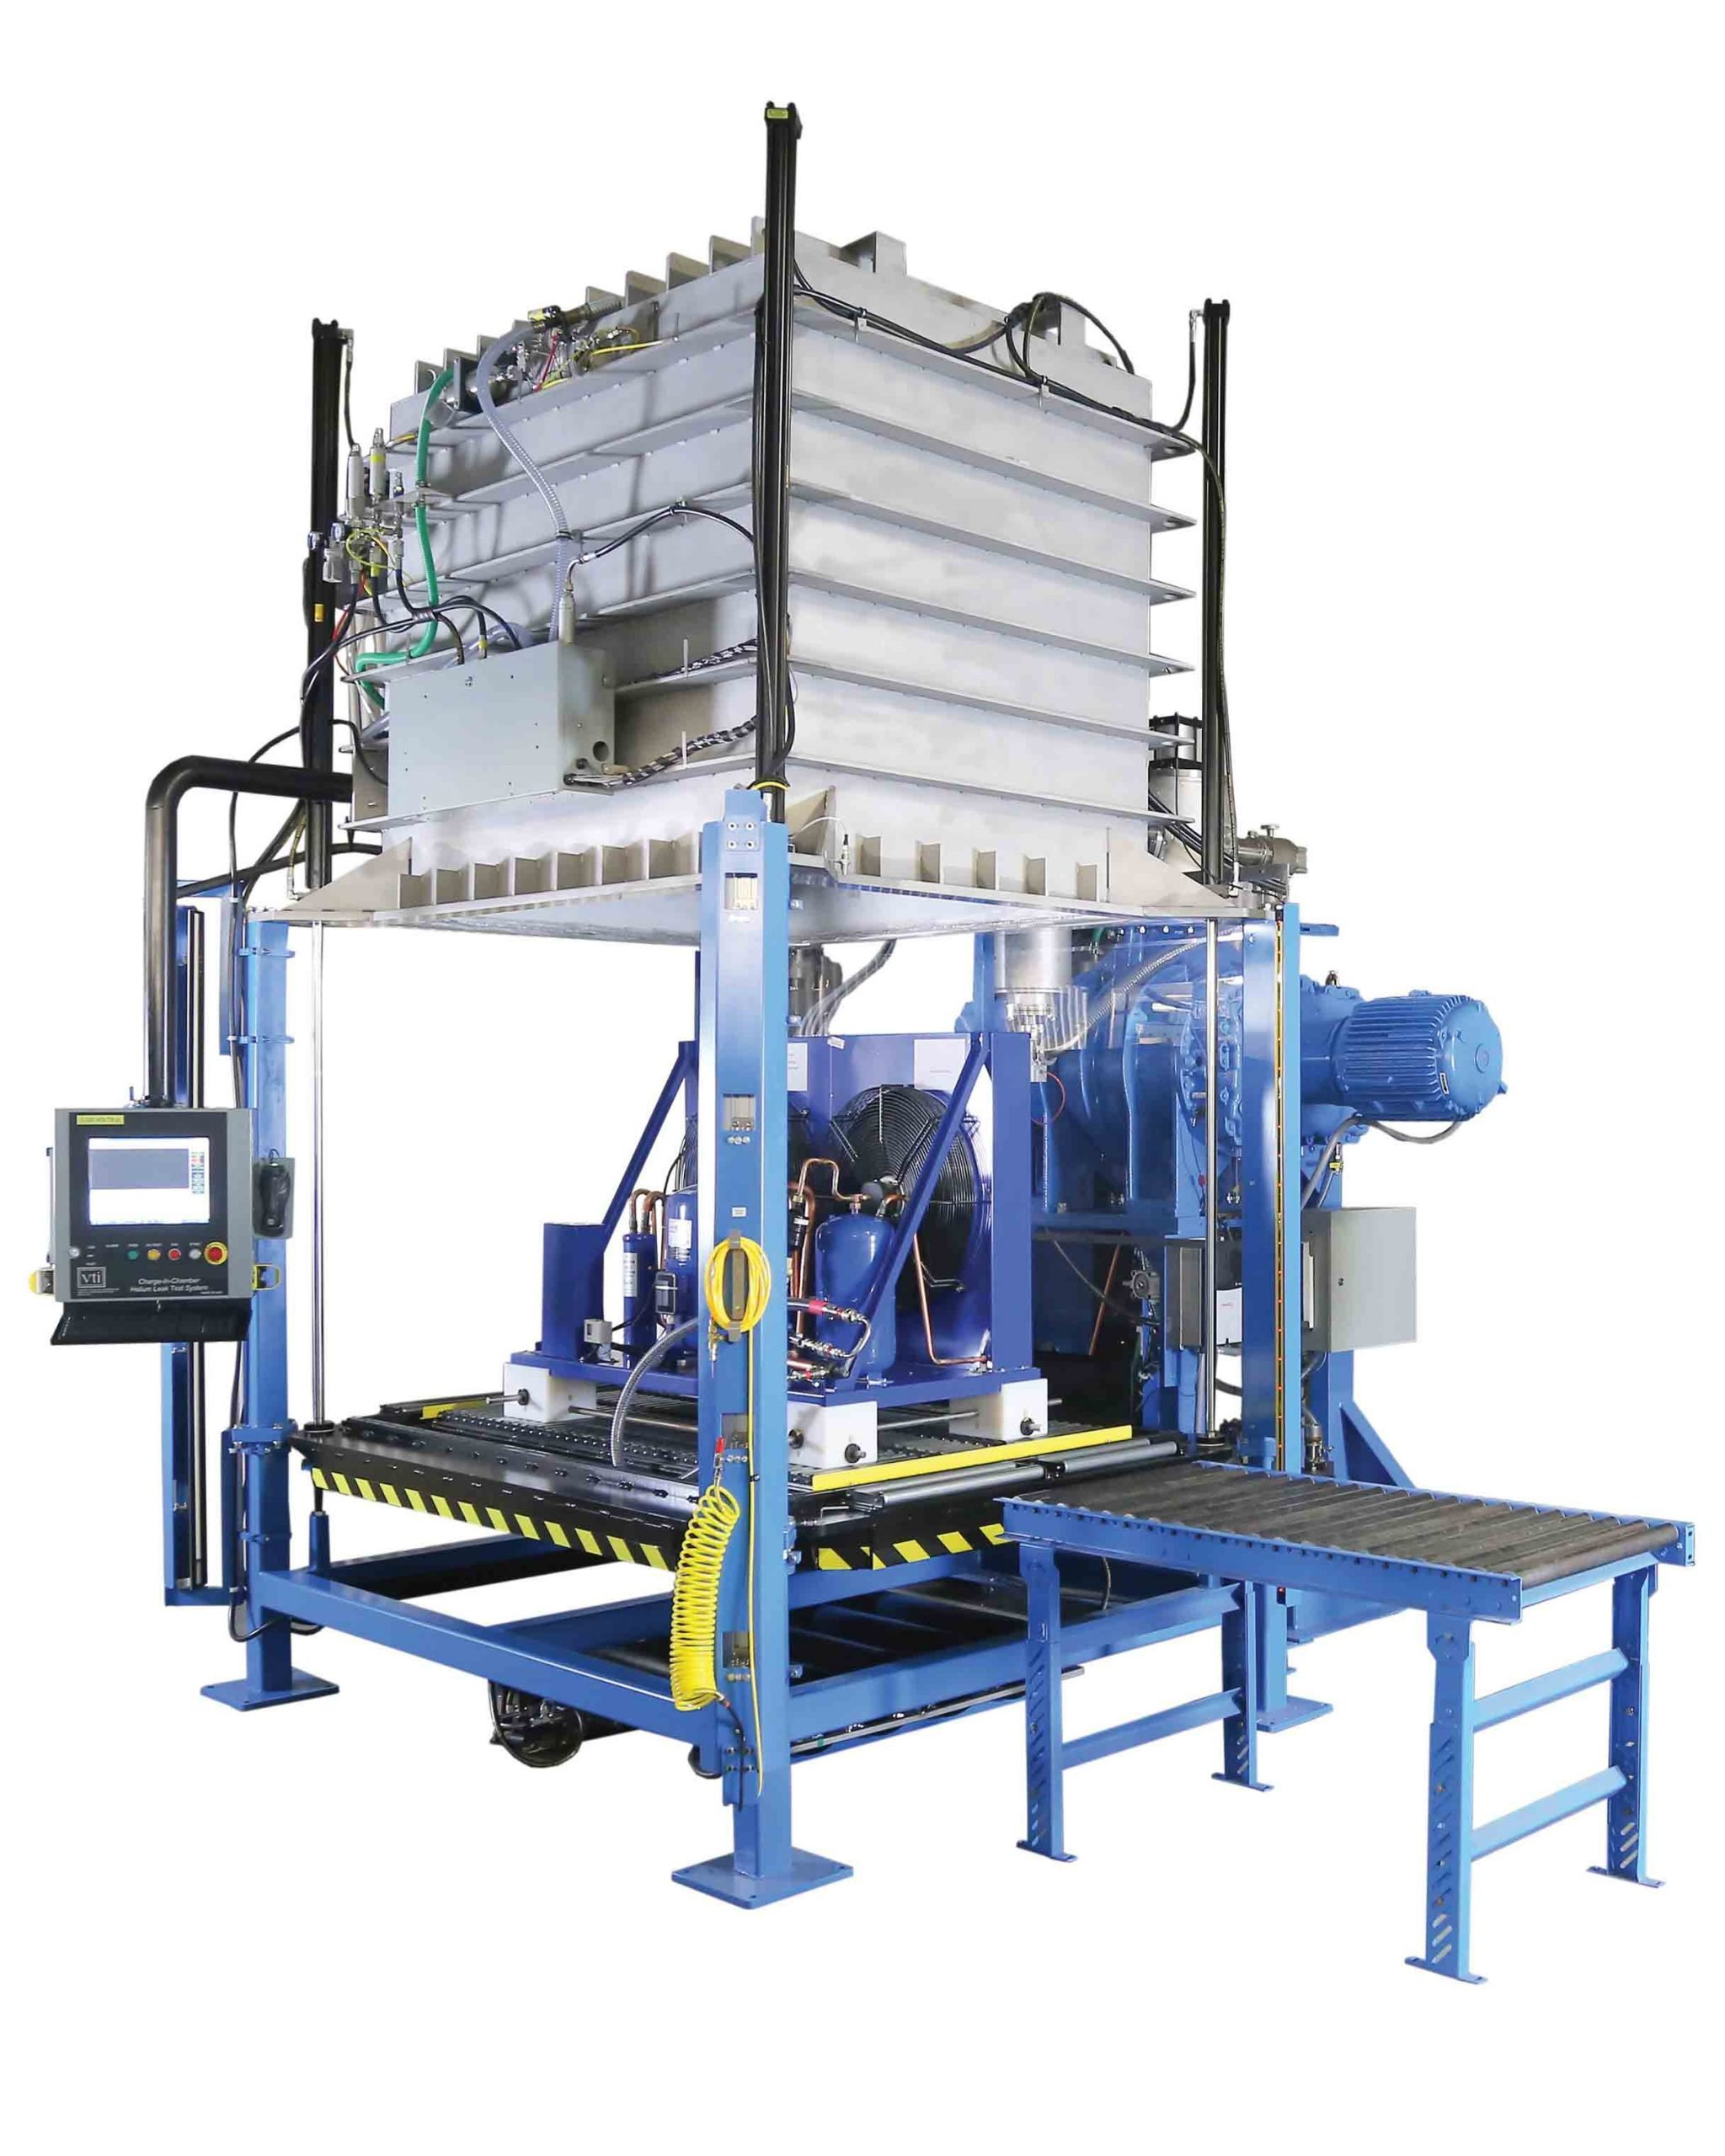 VTI's Charge-In-Chamber HLTS with Helium Recovery for Condensing Unit Manufacturing